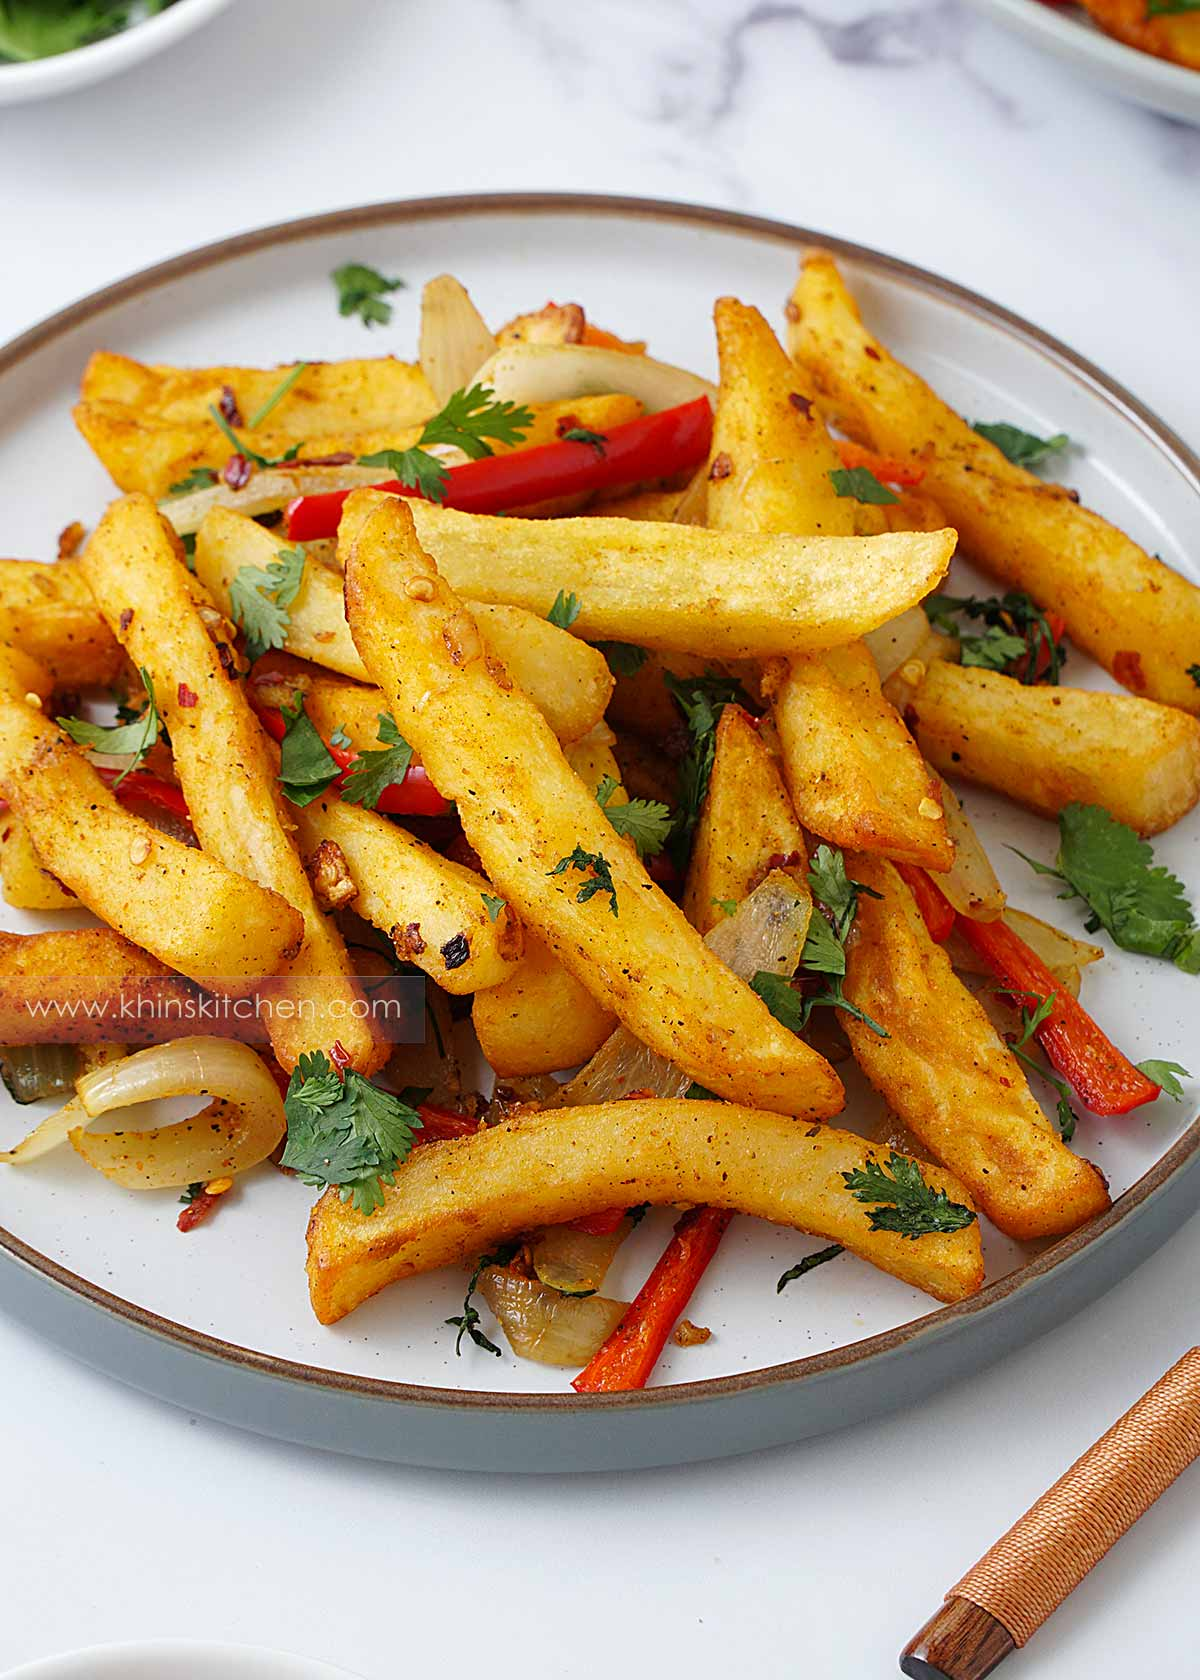 A white plate containing crispy fried chips and stir fried bell pepper with crushed chilli topped with coriander.